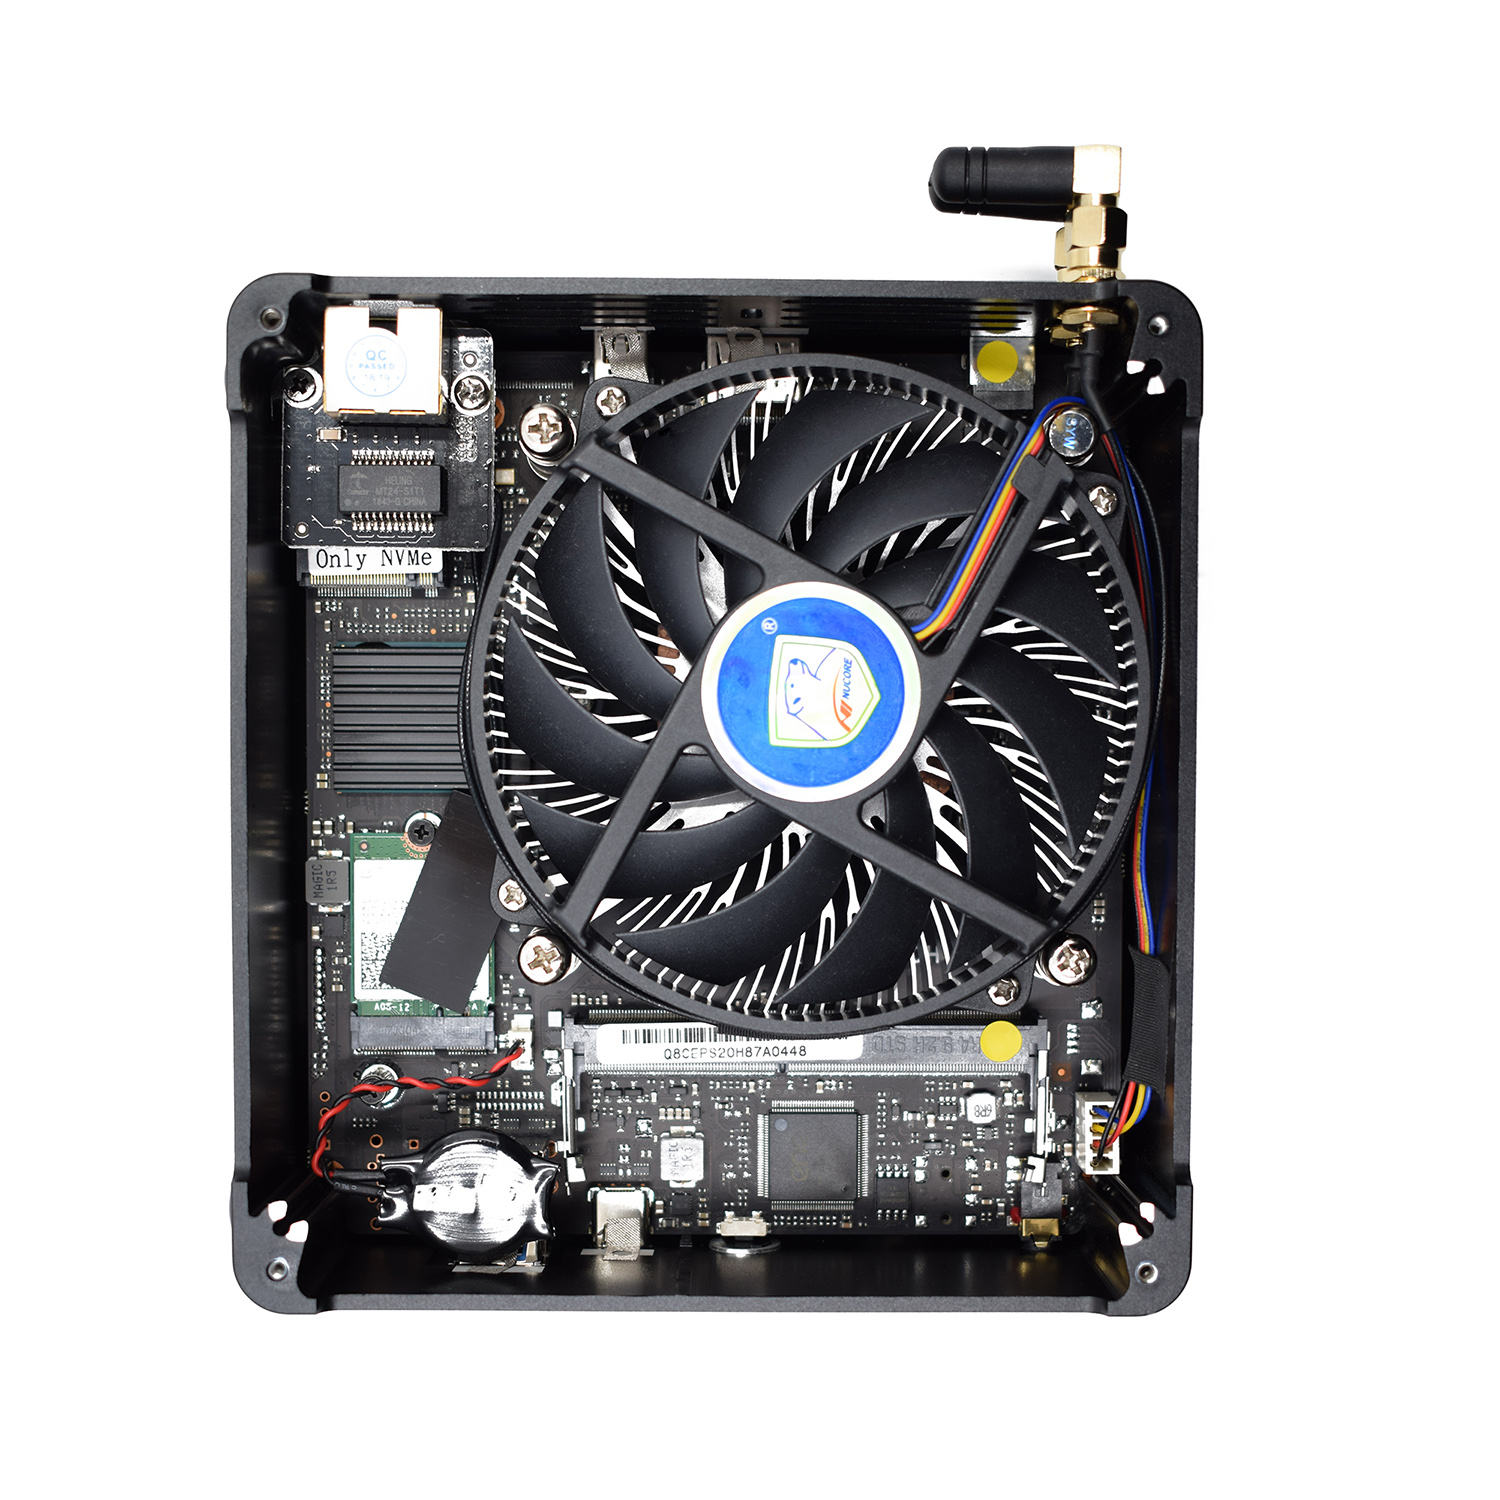 fan desktop pc gaming computer with i3 i5 i9 8950HK ddr4 32gb ram type c support 3D games window linux